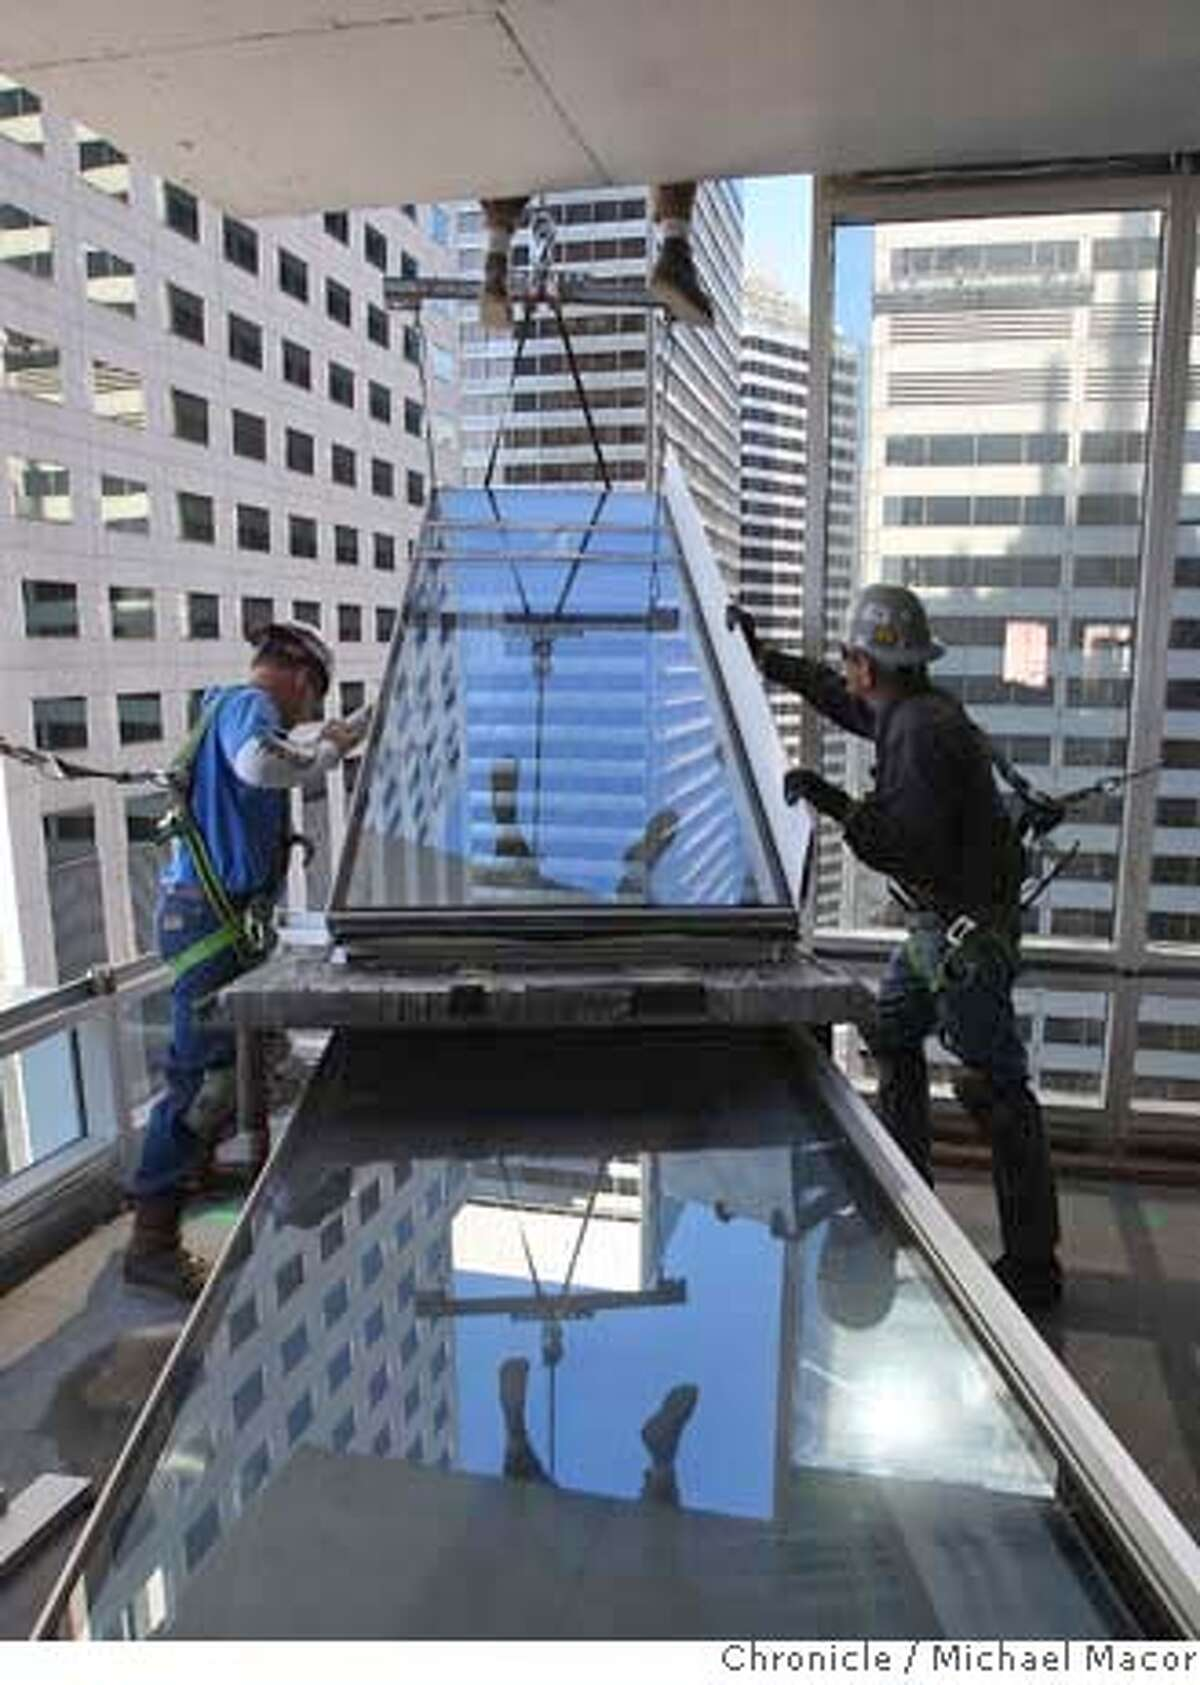 glass_slideshow_134_mac.jpg Greg Gardner, Scott Brown move a pane intoplace with the help of Mike Hepsley above. The Millennium Tower. A spate of new glass towers in San Francisco that could add up to a much different skyline from the south - one that boosters say will be gleaming and new, but detractors fear could be a bad flashback to 1980s Miami. Michael Macor / The Chronicle Photo taken on 10/11/07, in San Francisco, CA, USA Ran on: 11-26-2007 301 Mission St., one of the new glass high-rises, is reflected in the facade of a neighboring glass tower at 210 Mission St.